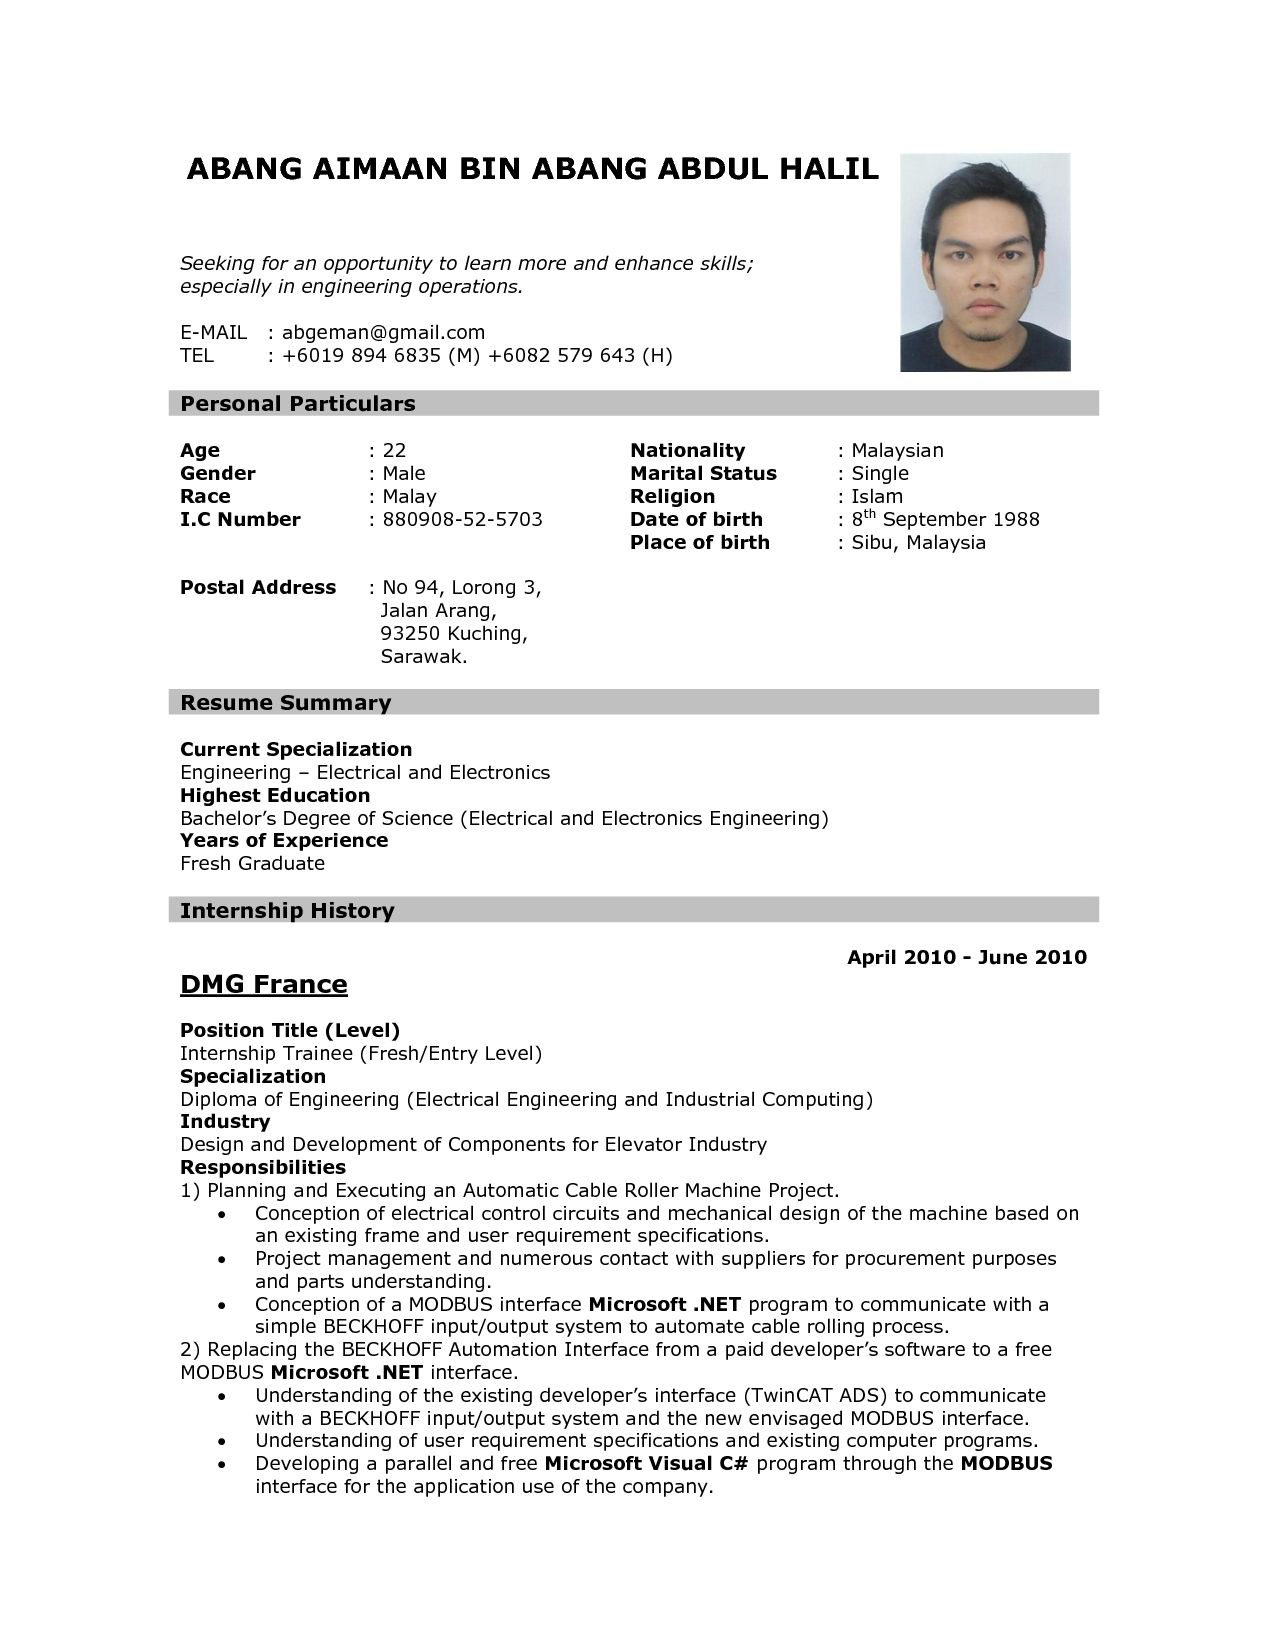 nice sample resume for applying a job sample resume for applying a job resume template online - A Resume For A Job Application